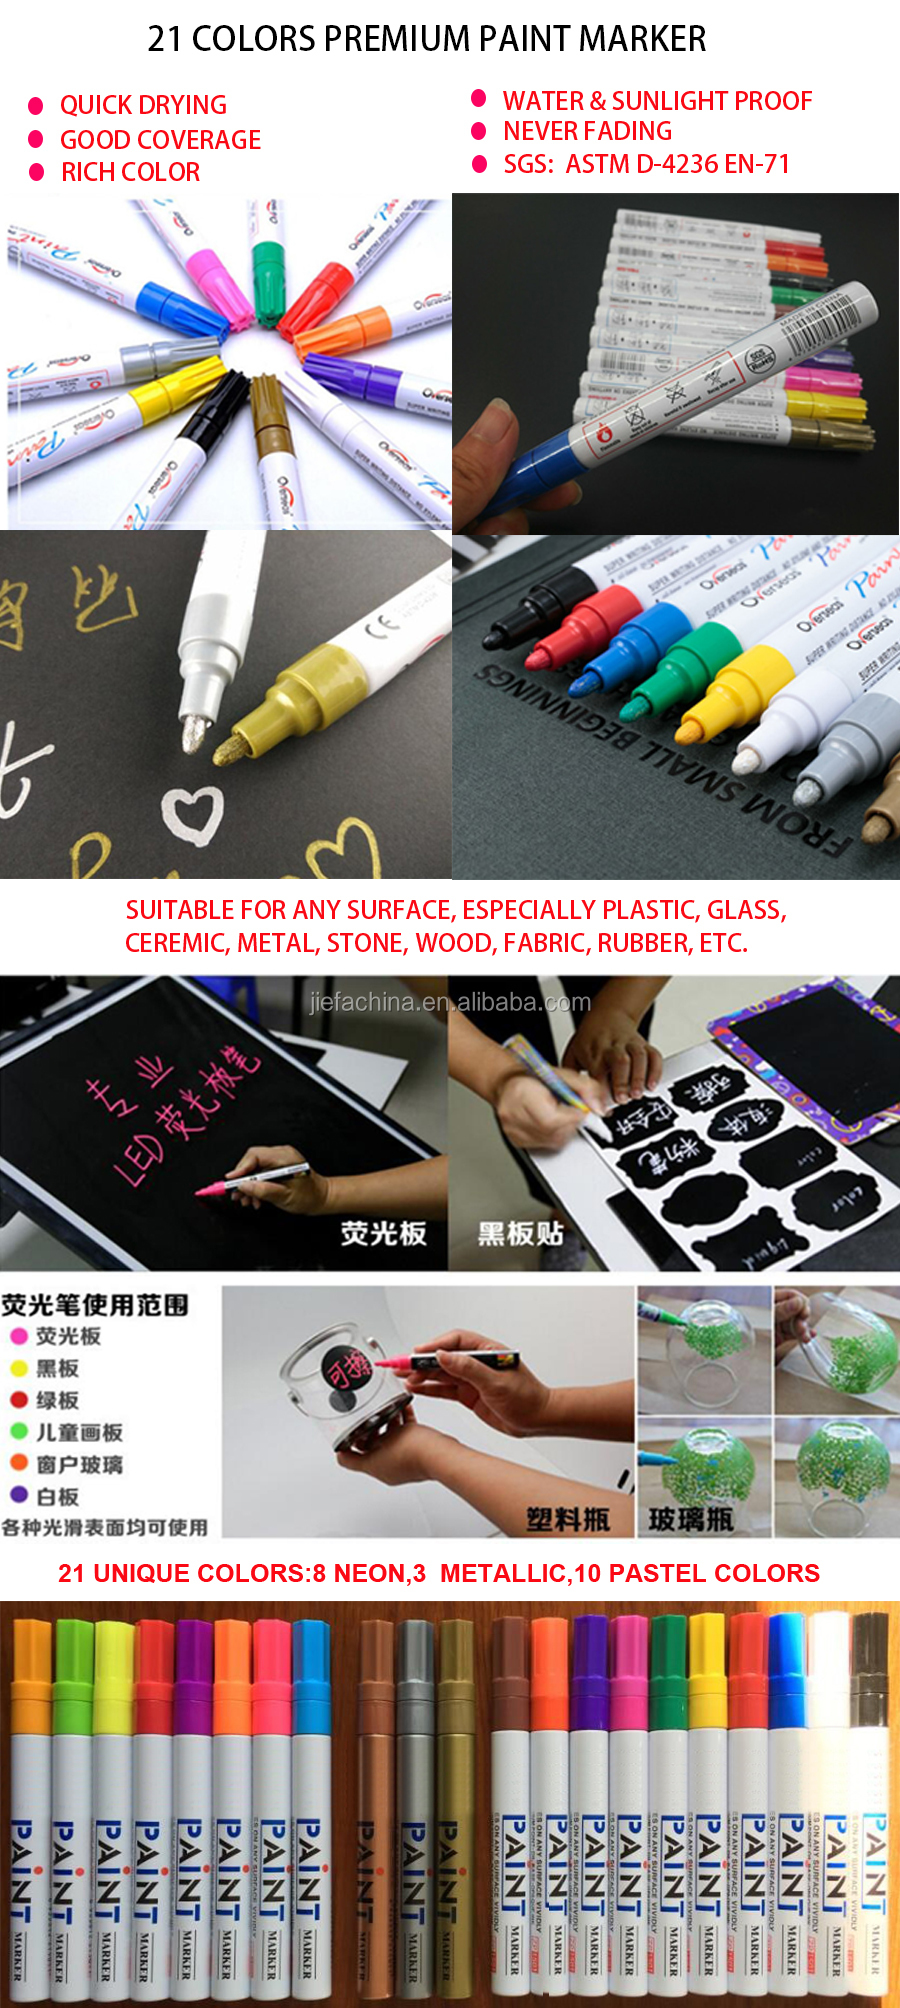 Permanent Waterproof Alcohol or Acrylic paint marker pen set suitable for wood,plastic,glass,ceramic,fabric any surface